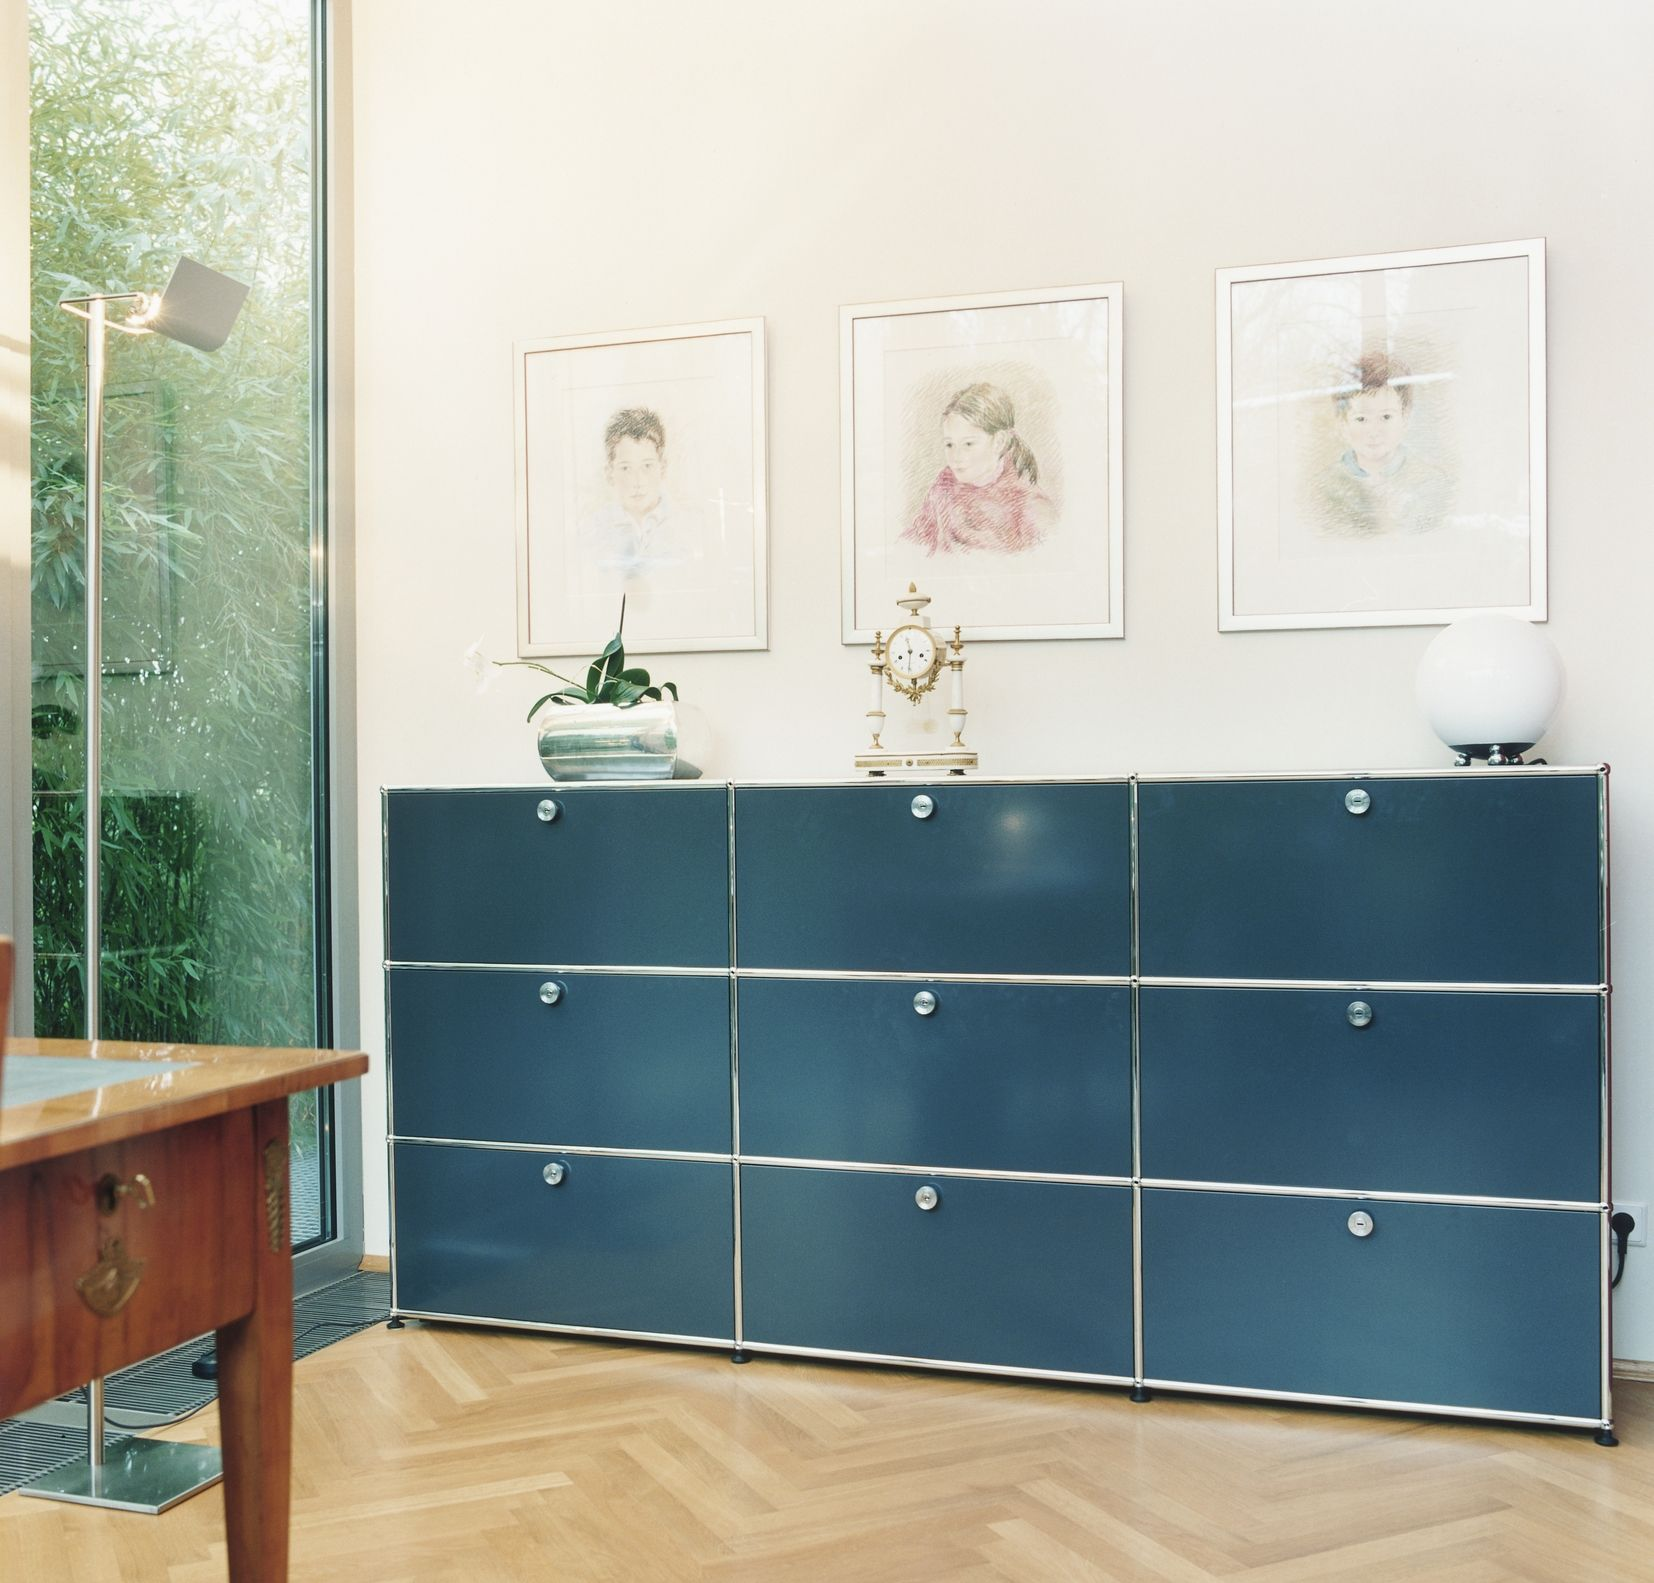 La chair usm haller konfigurationsbeispiel sideboard for Sideboard usm